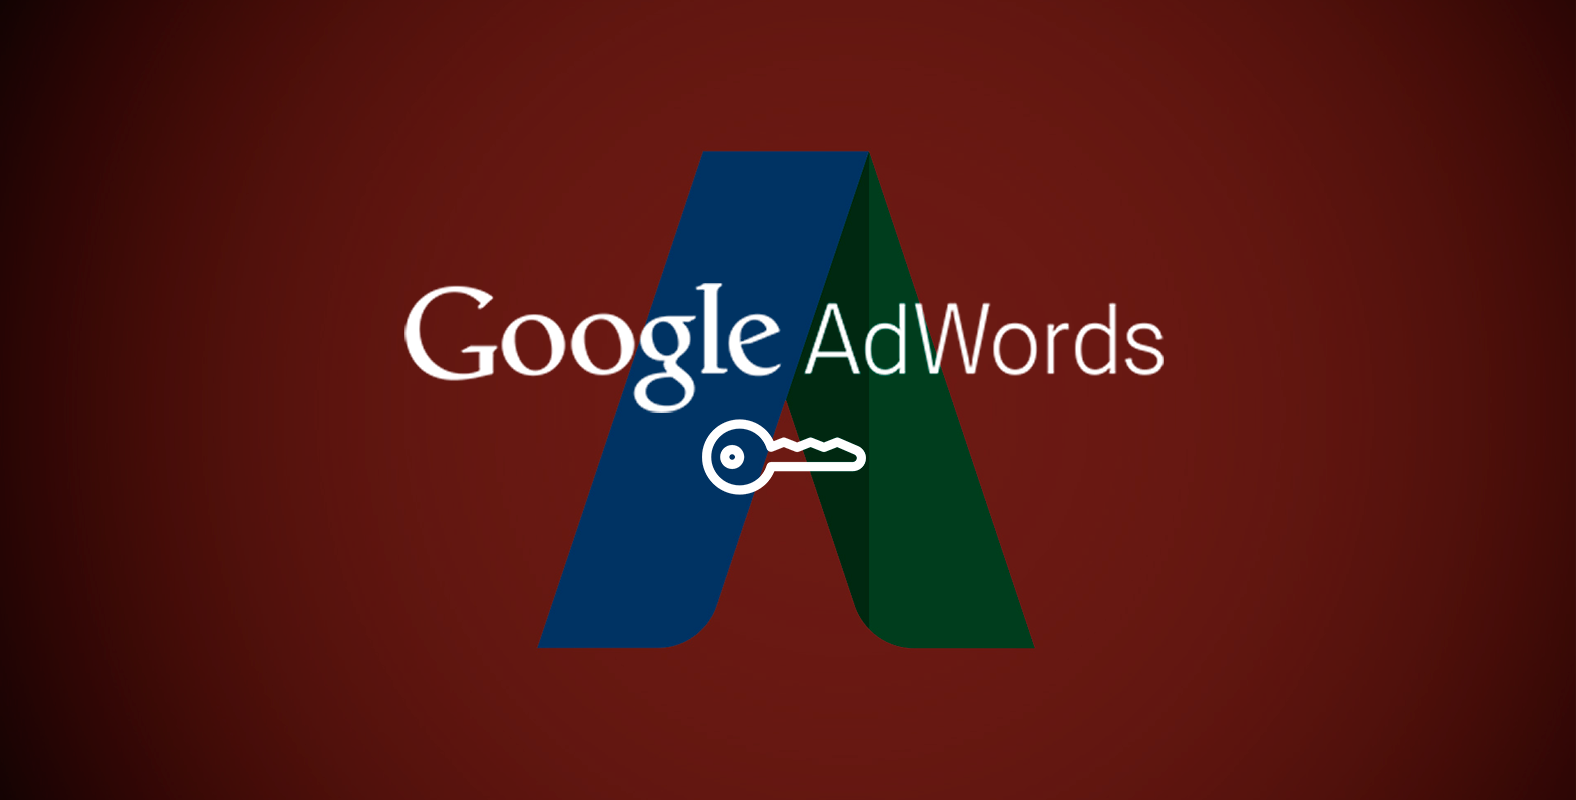 операторы ключевых слов Google Adwords